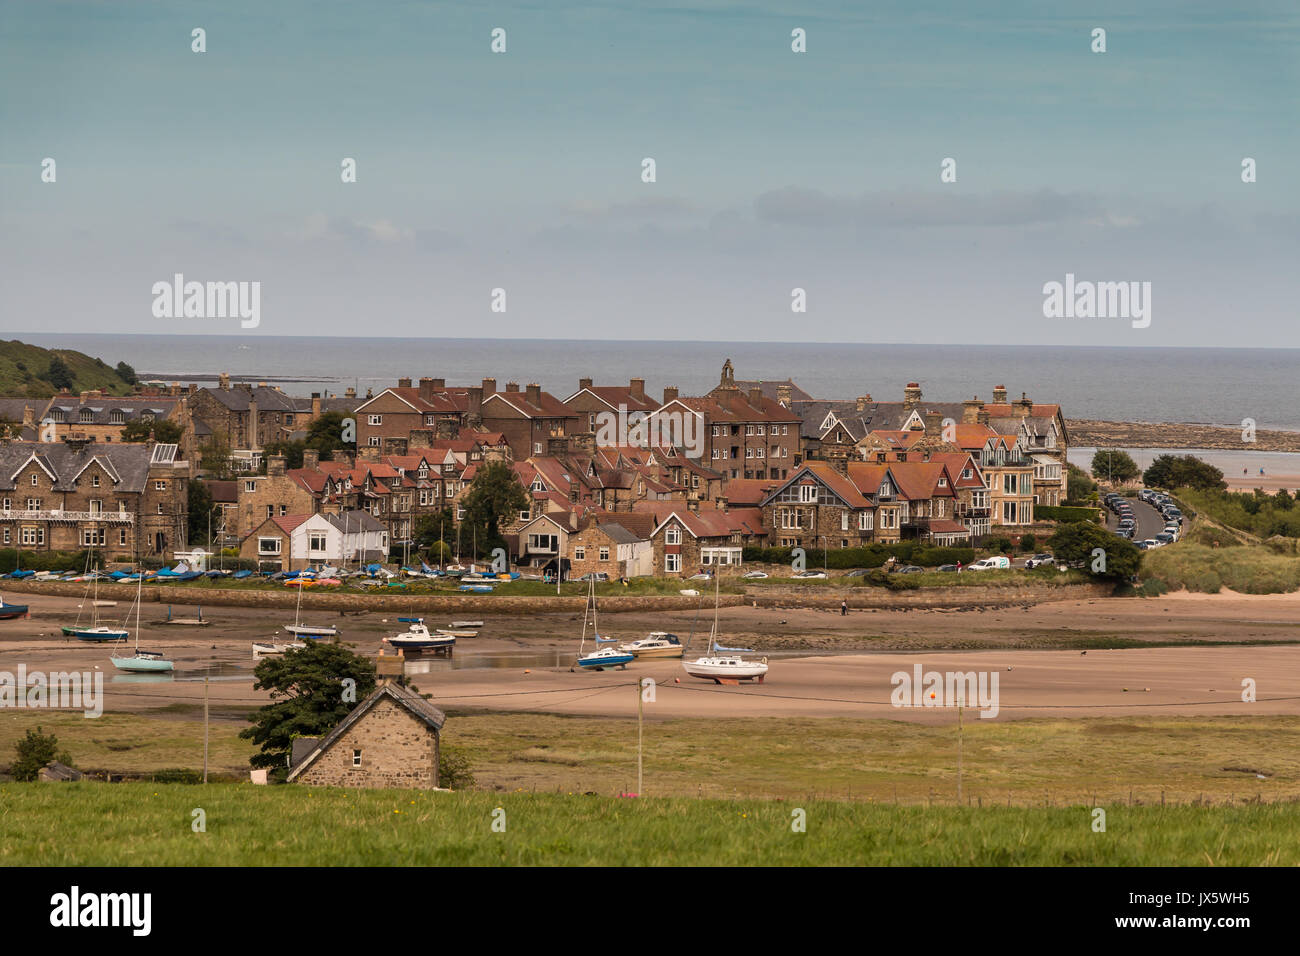 Alnmouth Village and Harbour, Northumberland Coast, UK with copy space - Stock Image